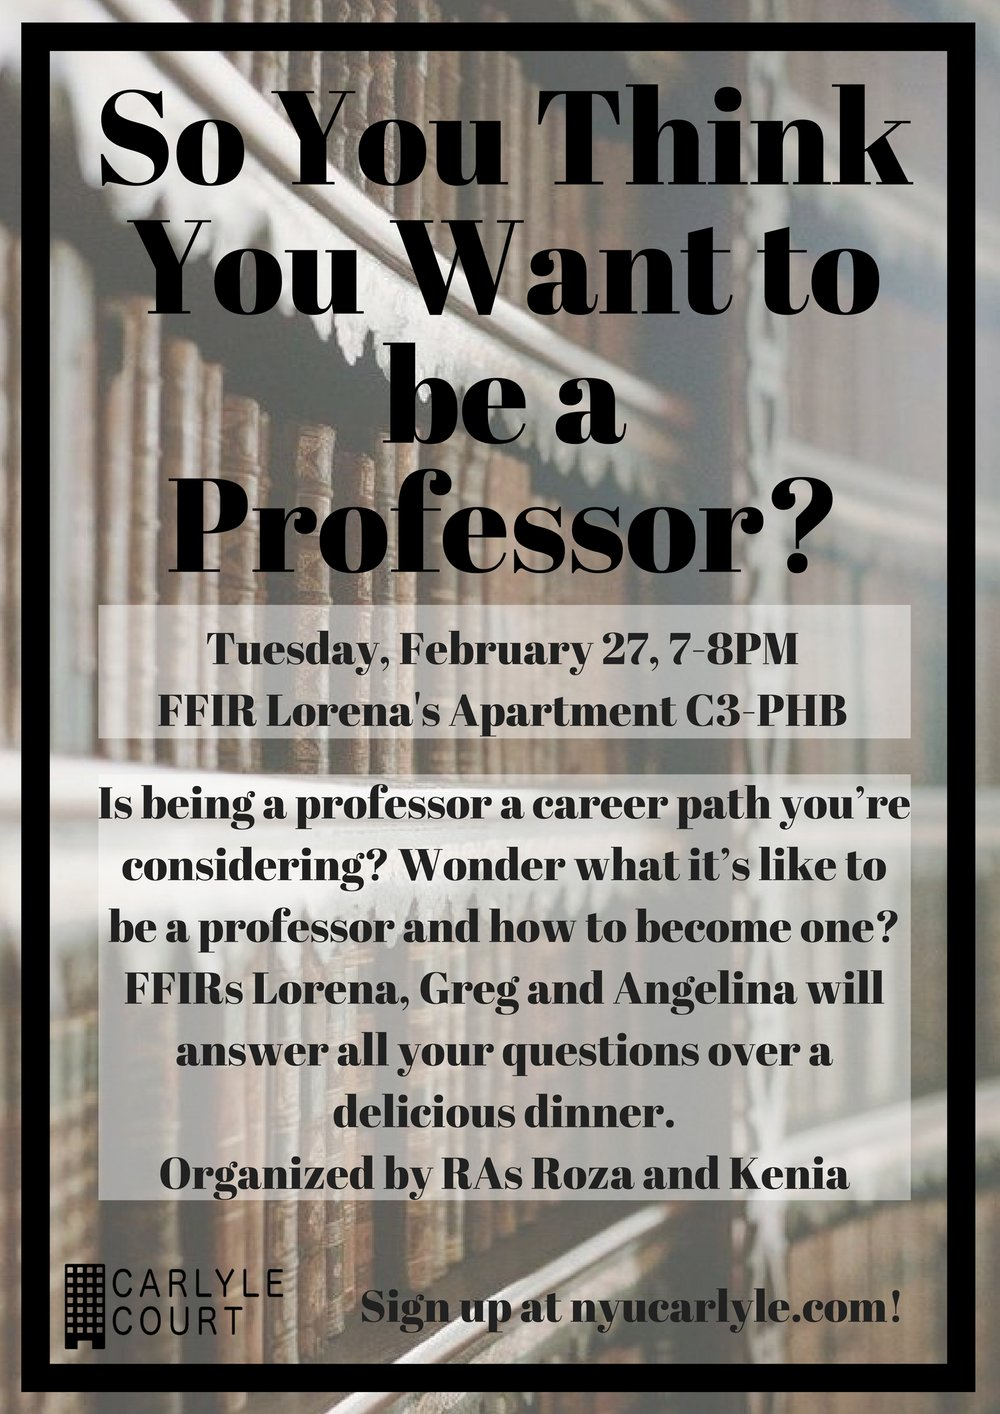 So You Think You Want to be a Professor_.jpg